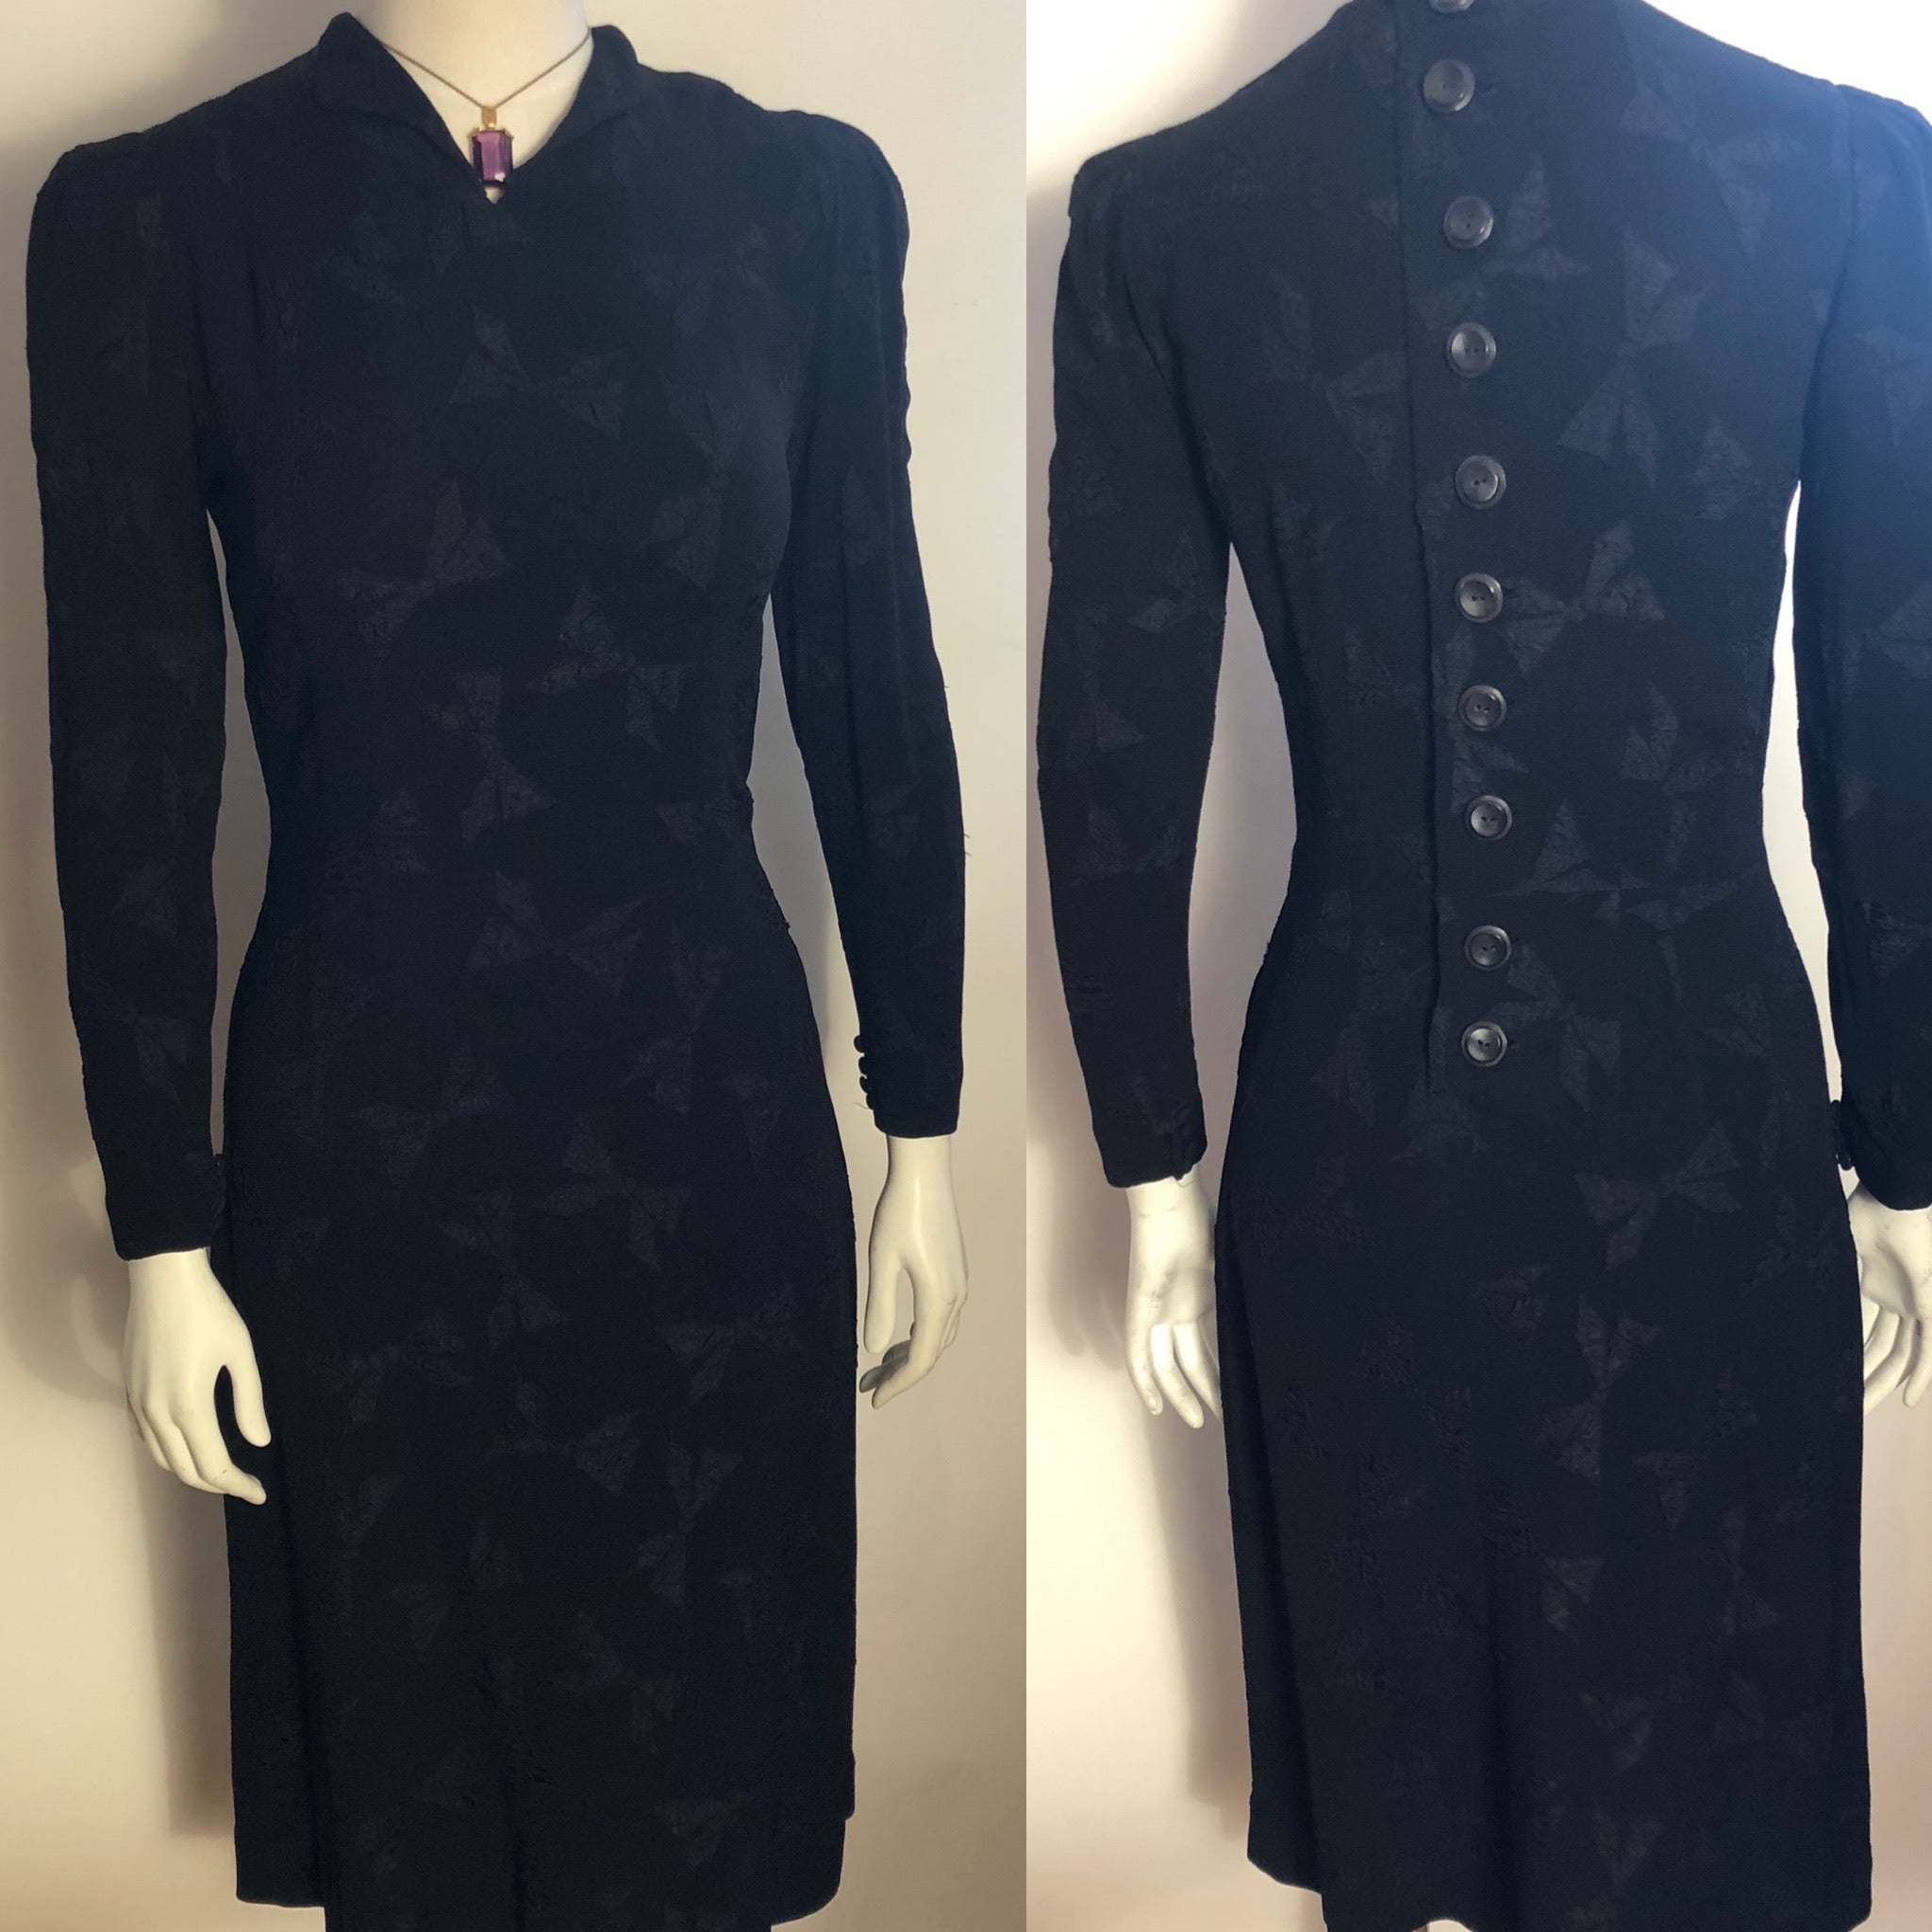 1930s Woven Crepe Dress with Bows